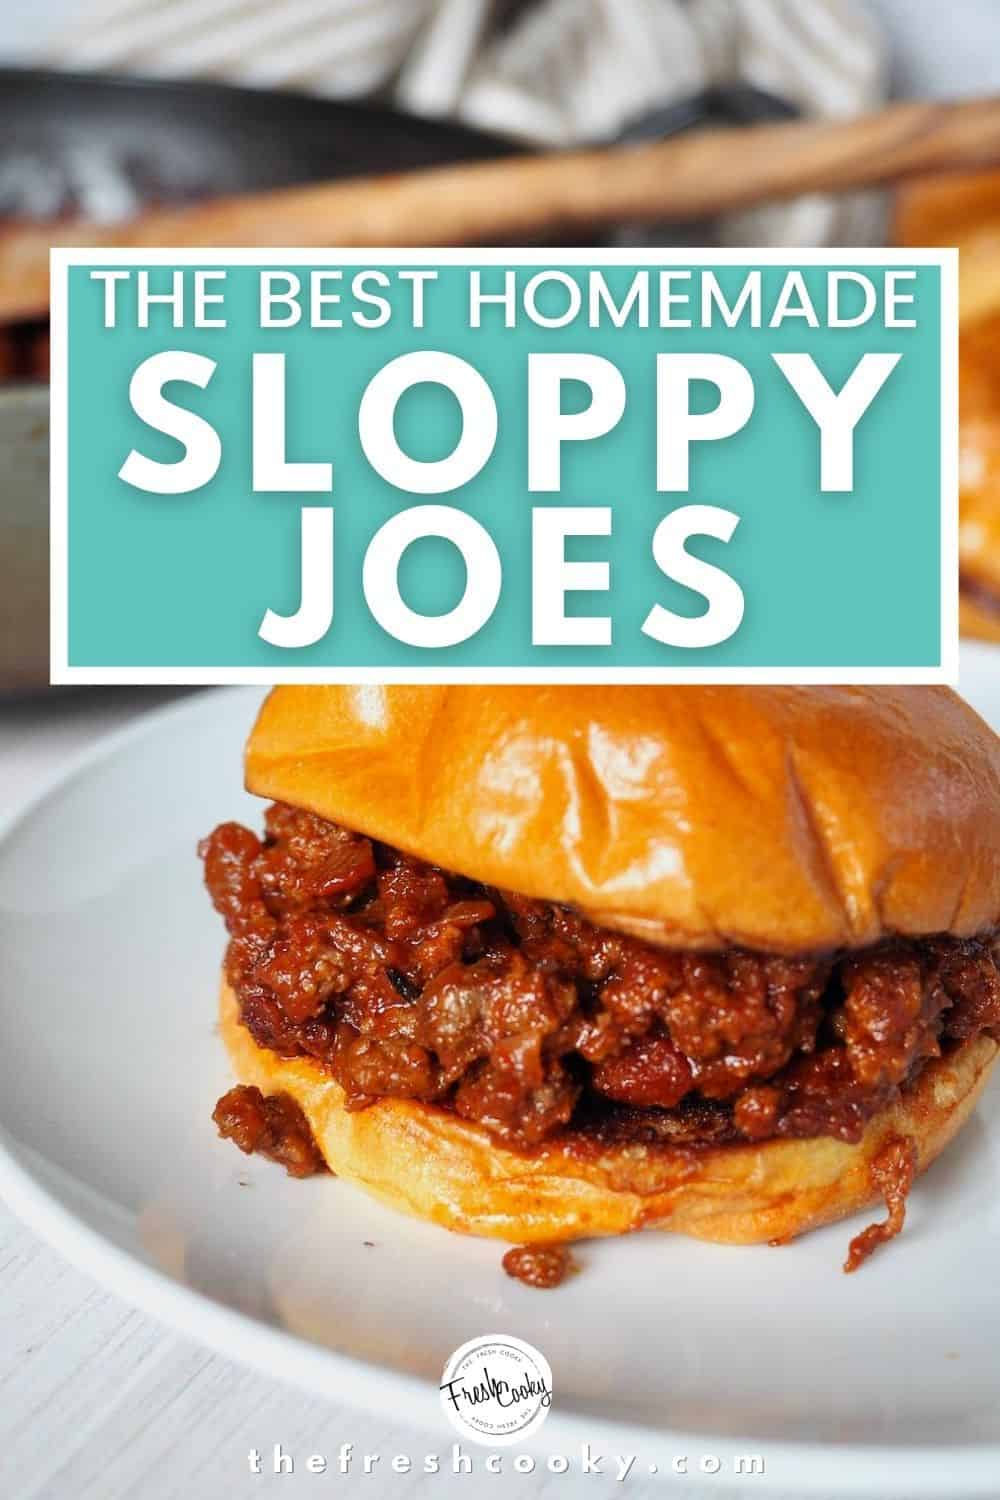 Brown Sugar Bacon Sloppy Joes are the best...EVER! With a  homemade rich, tomato sauce. Easy recipe via @thefreshcooky | #sloppyjoes #bacon #sloppyjoe #burger #sandwich #manwich #glutenfree #30minutemeal #easydinner #dinner #weeknight via @thefreshcooky